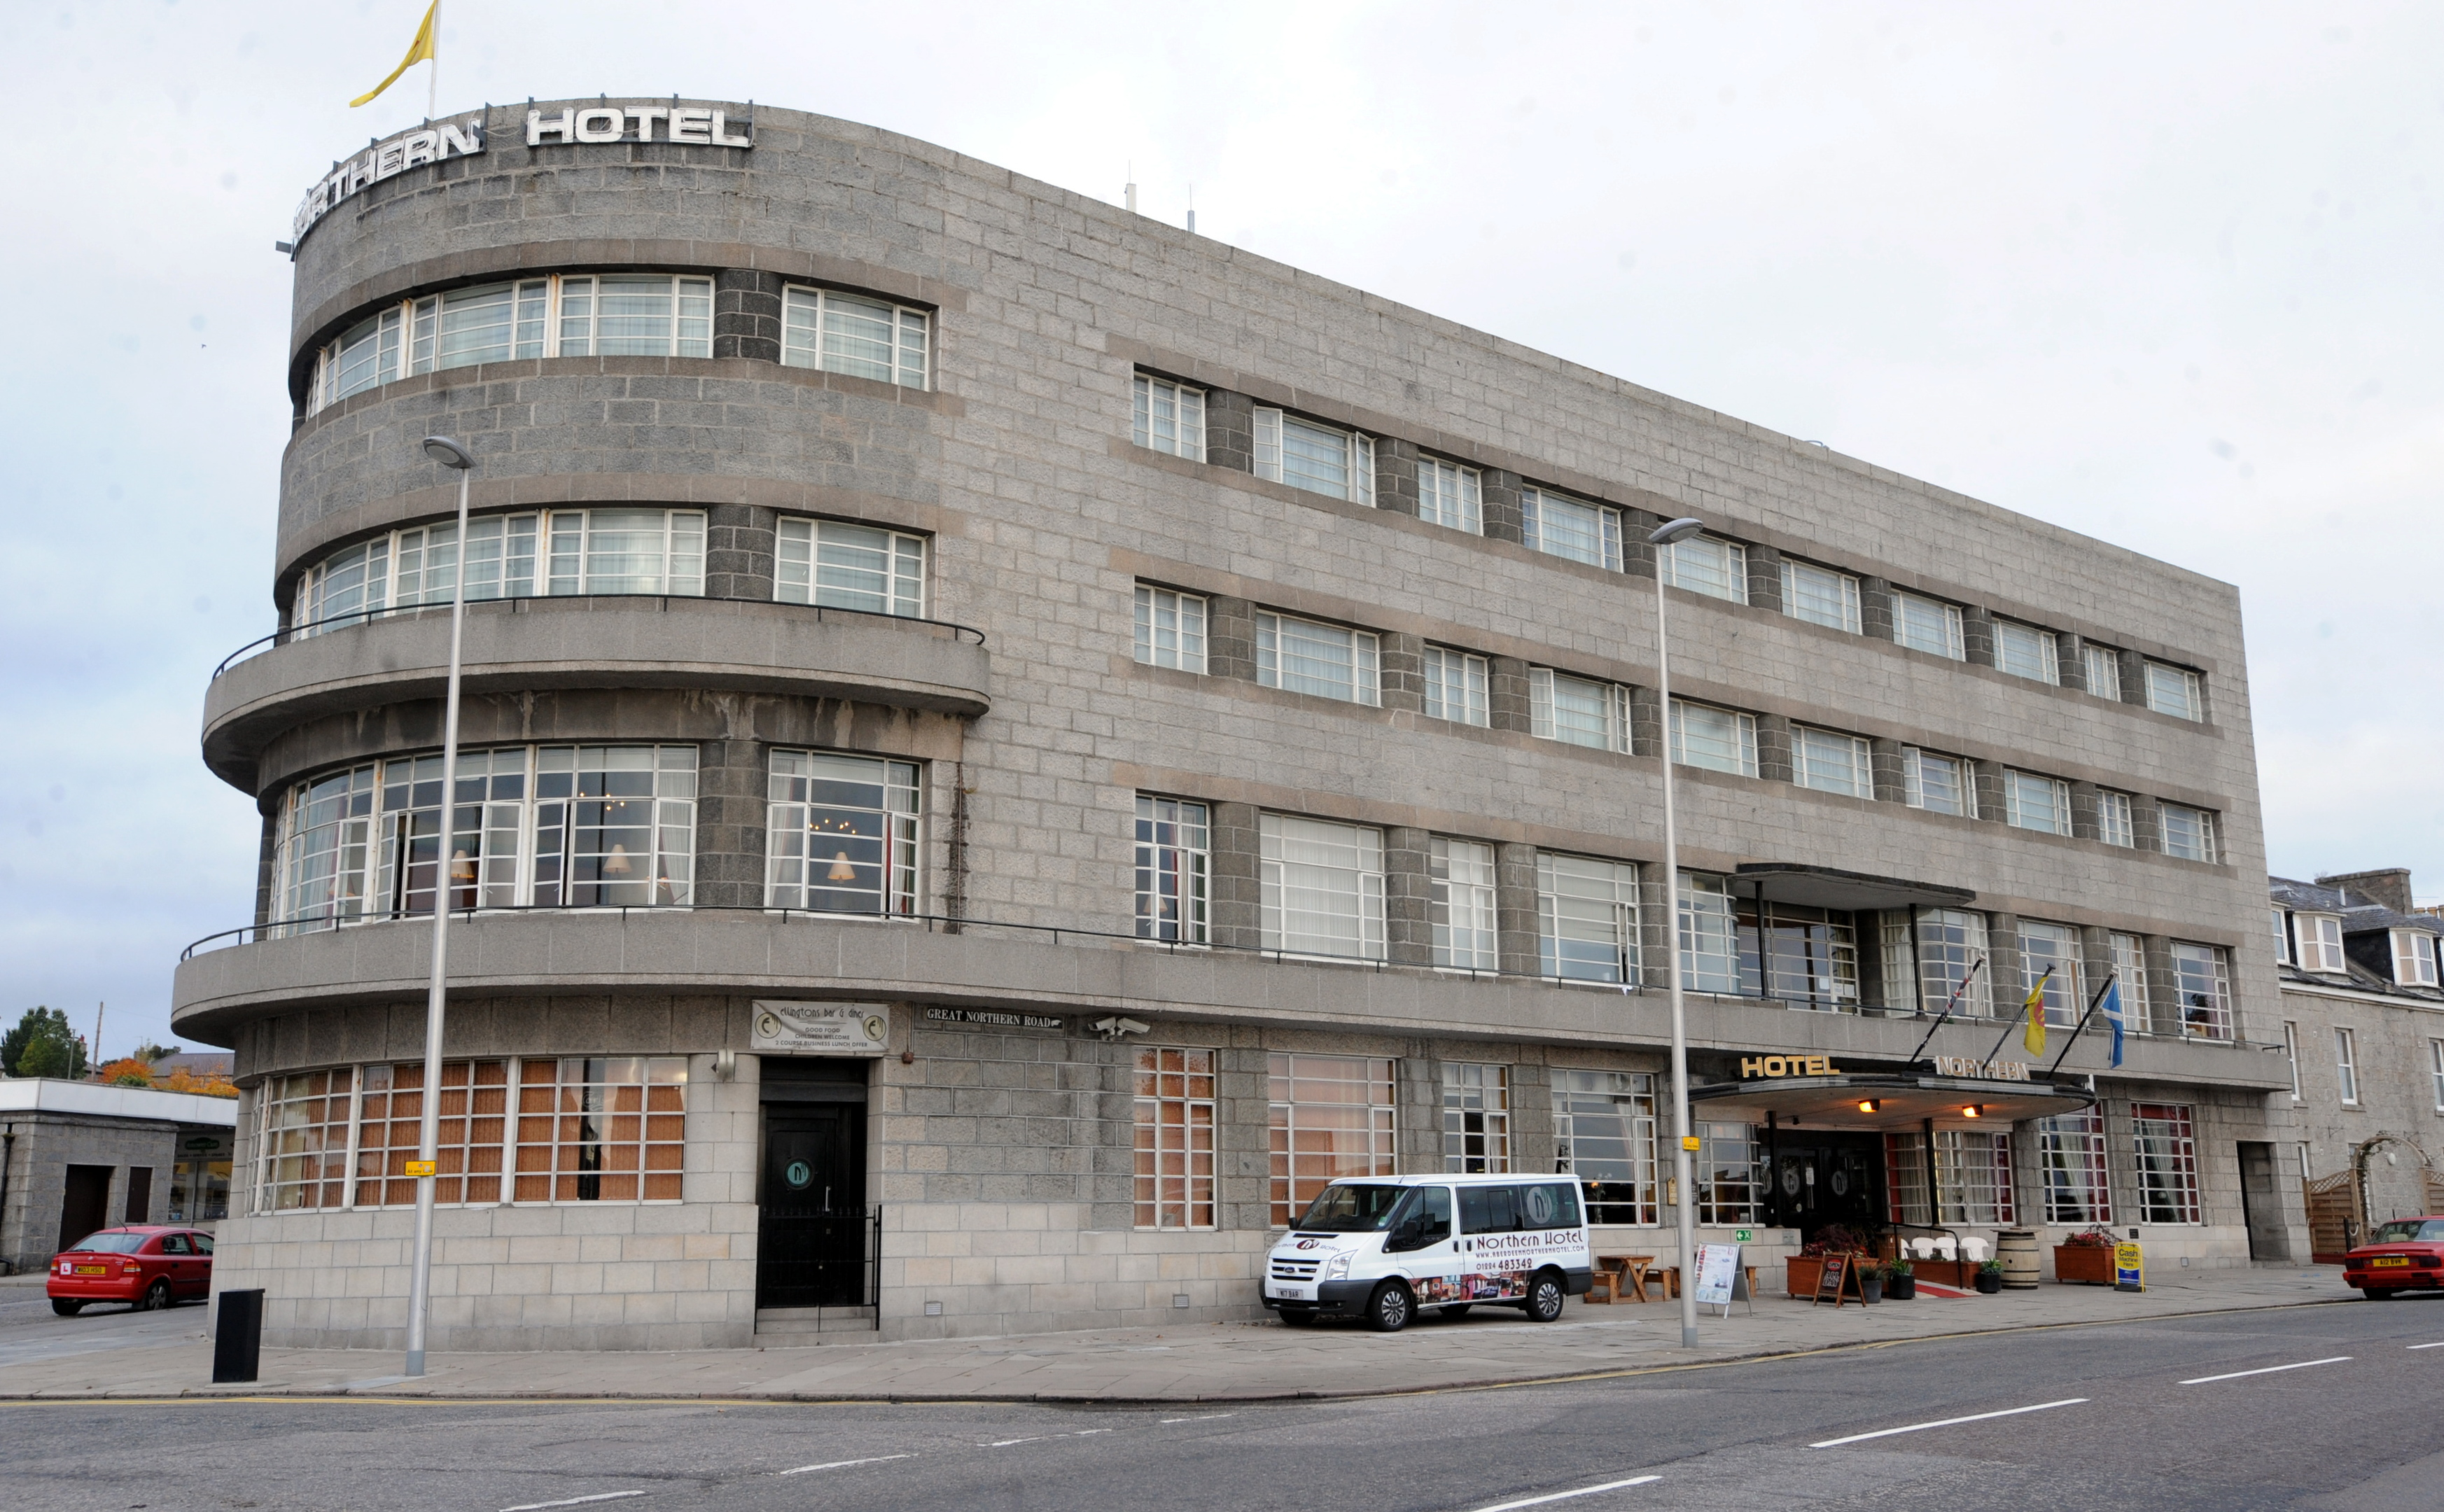 The Northern Hotel submitted the plans.